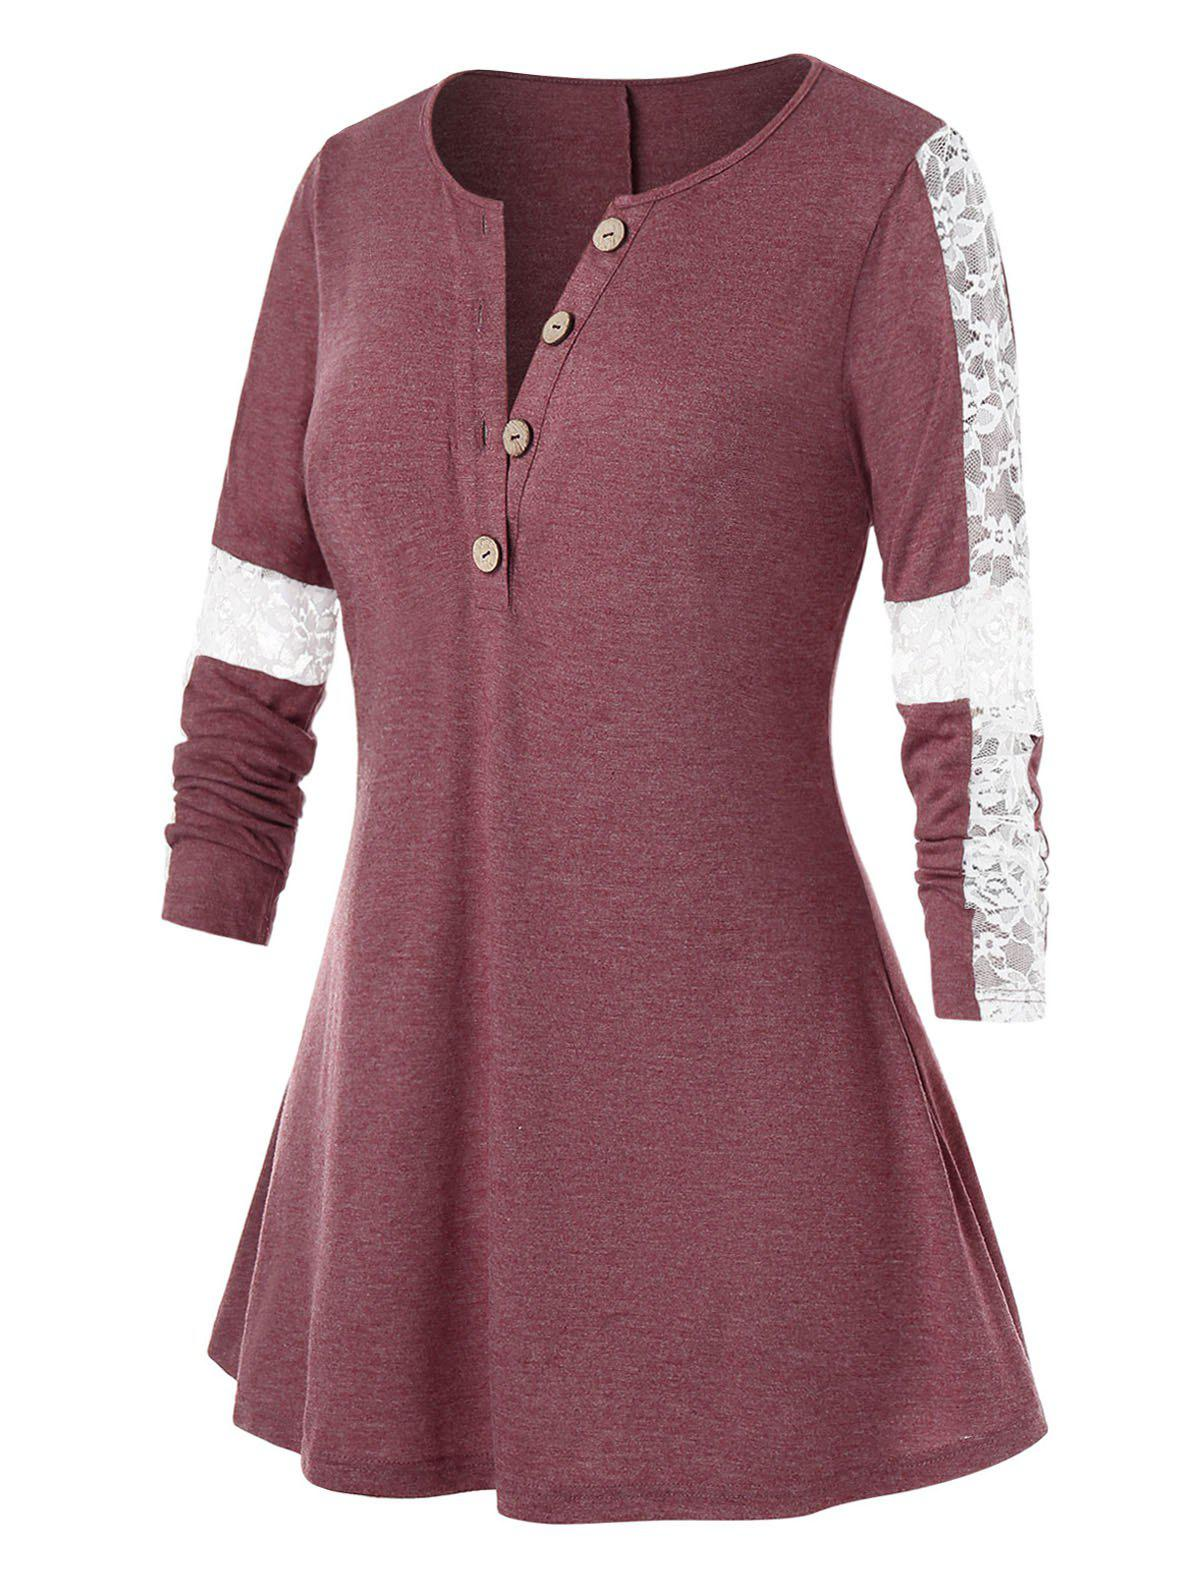 Plus Size Button Lace Panel A Line Top - RED WINE 2X